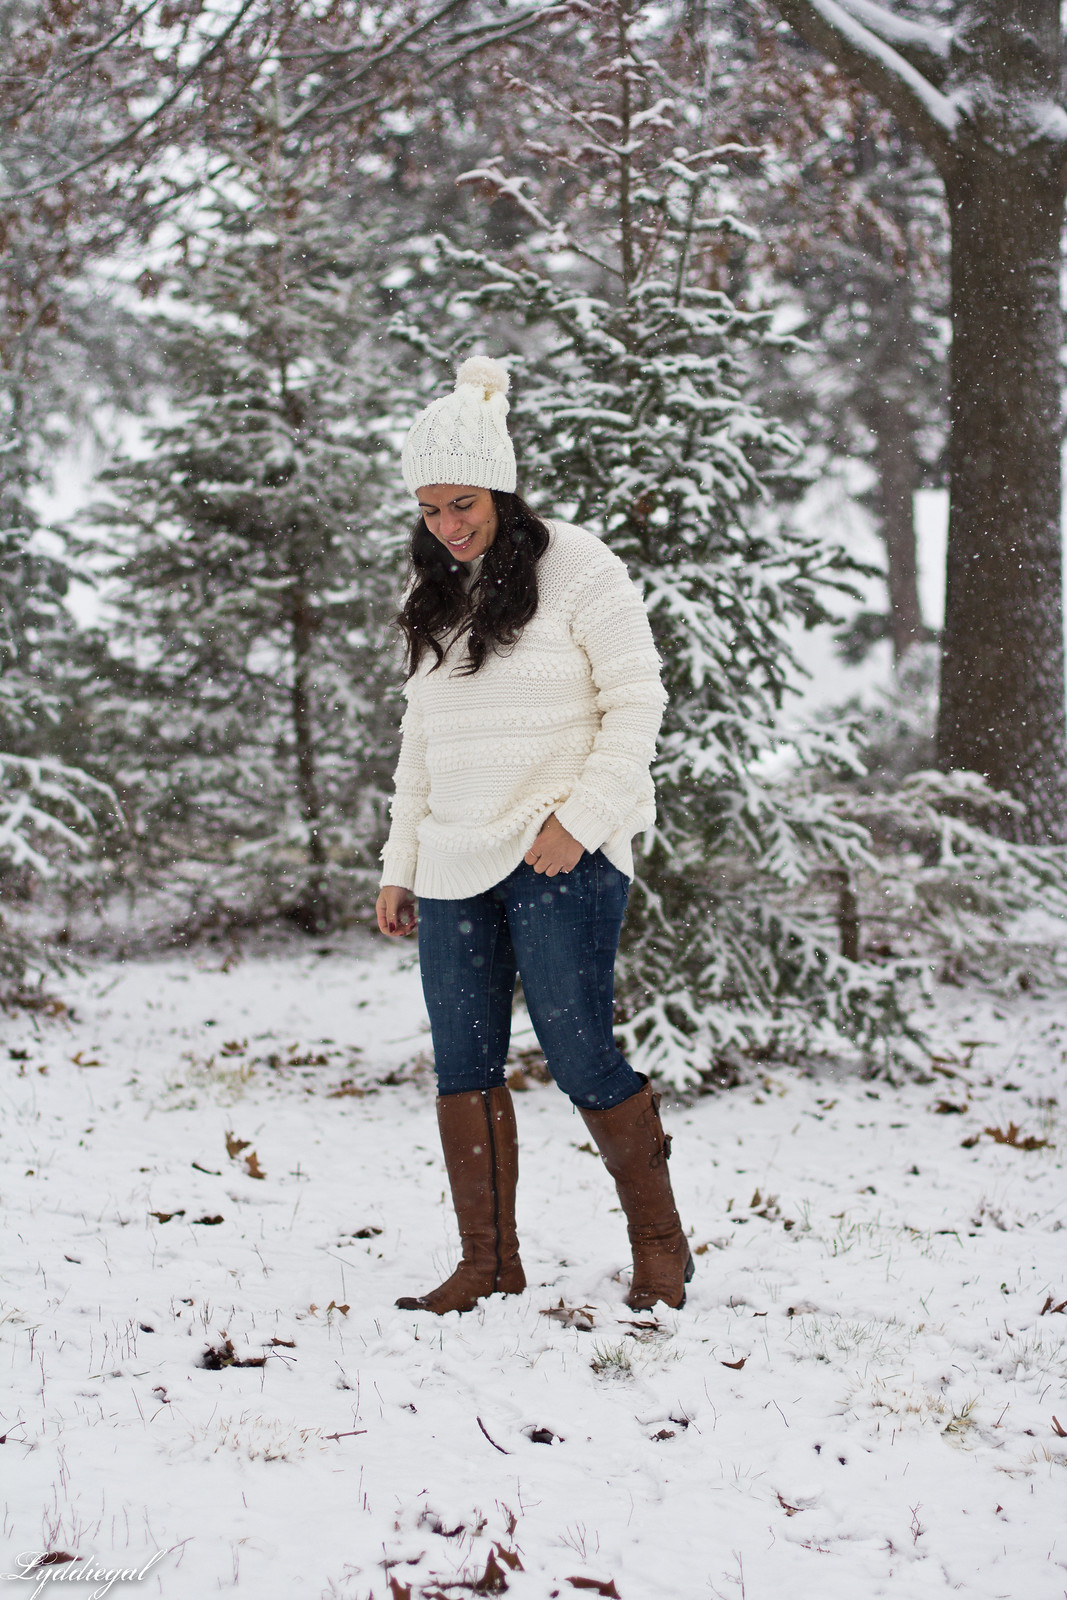 CT Fashion blogger wearing a loft white sweater, brown leather boots, pom pom hat, tree hunt outfit-12.jpg